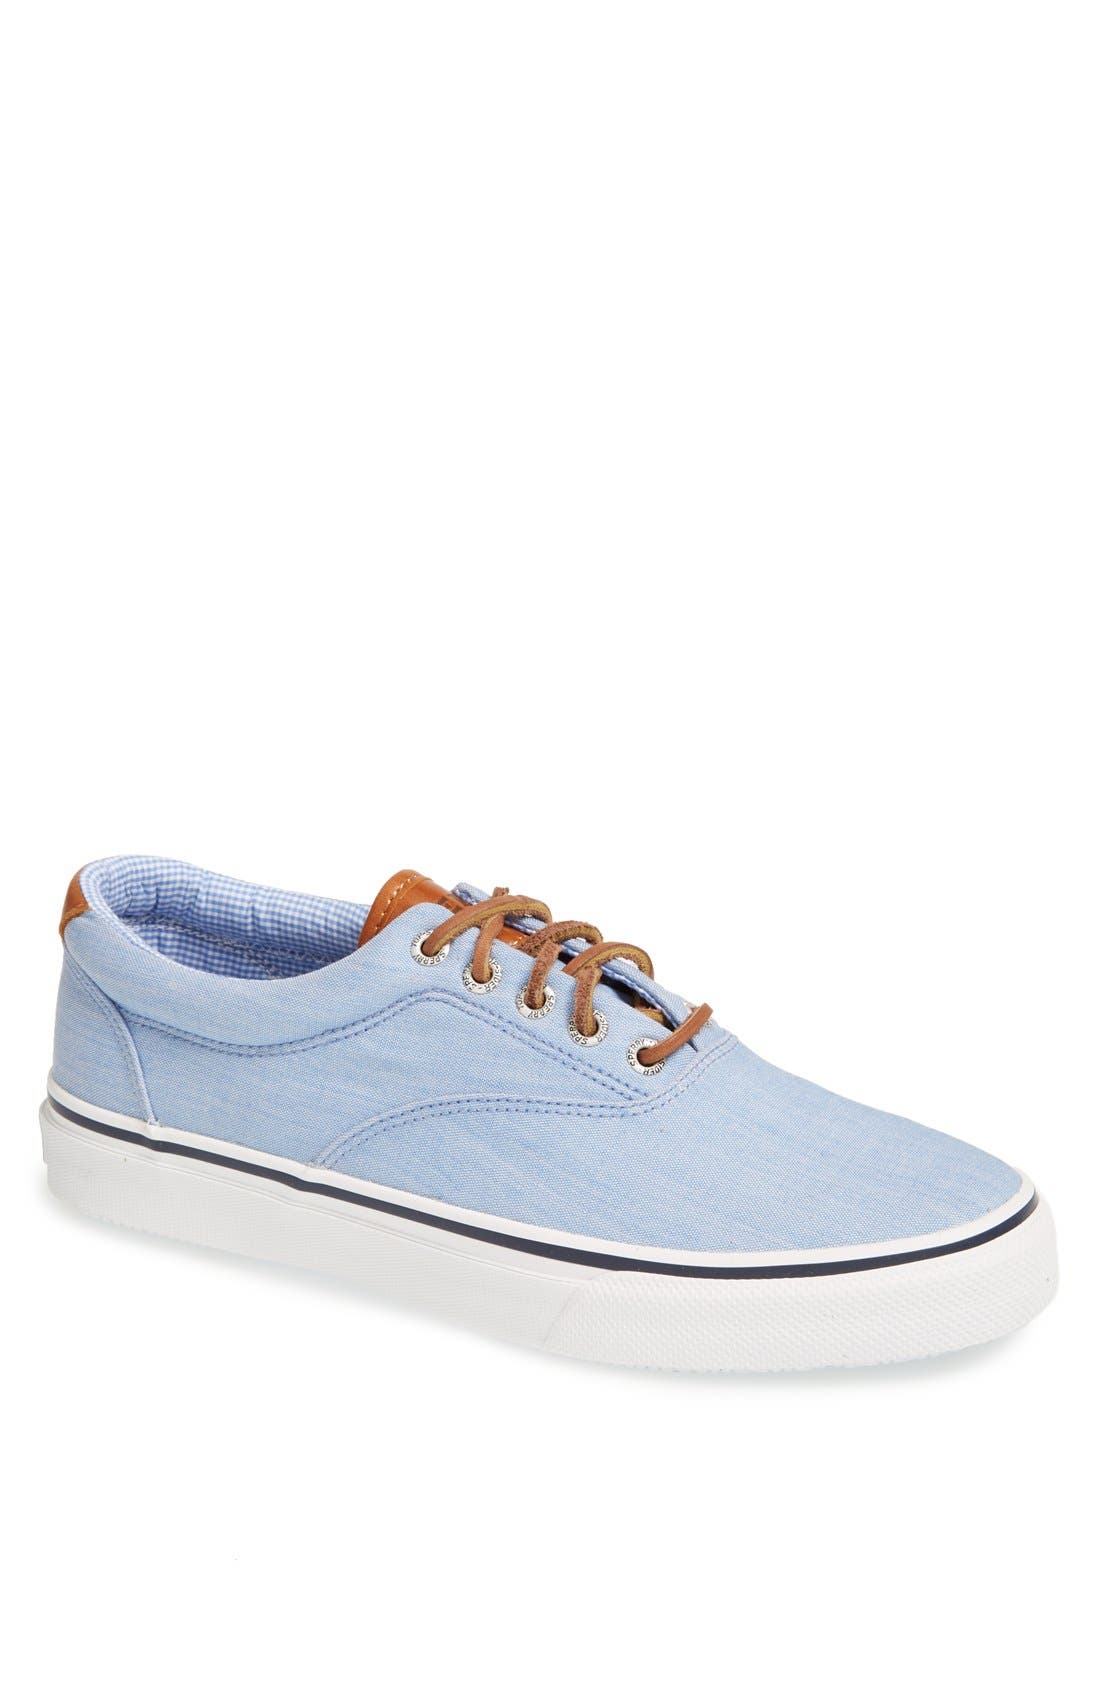 Alternate Image 1 Selected - Sperry Top-Sider® 'CVO' Chambray Sneaker (Men)